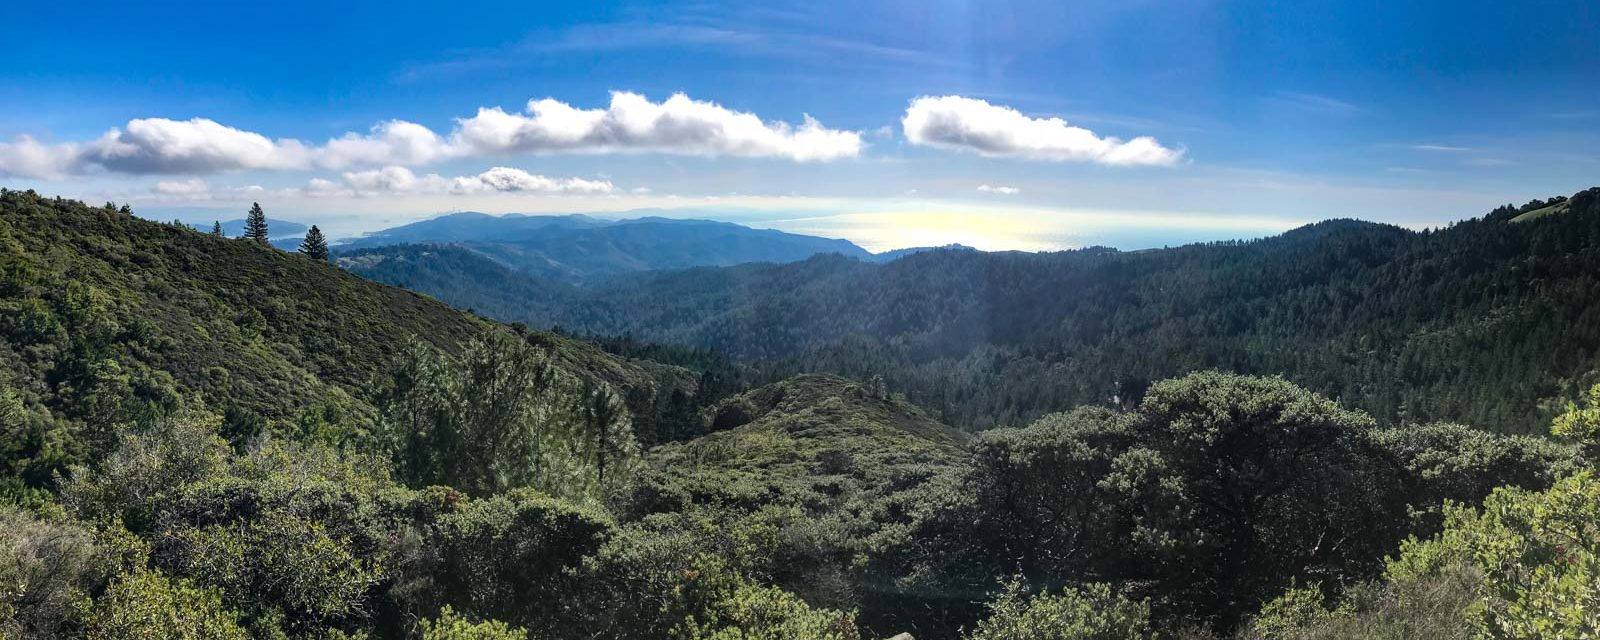 Group Hike: Stinson Beach to Mount Tamalpais